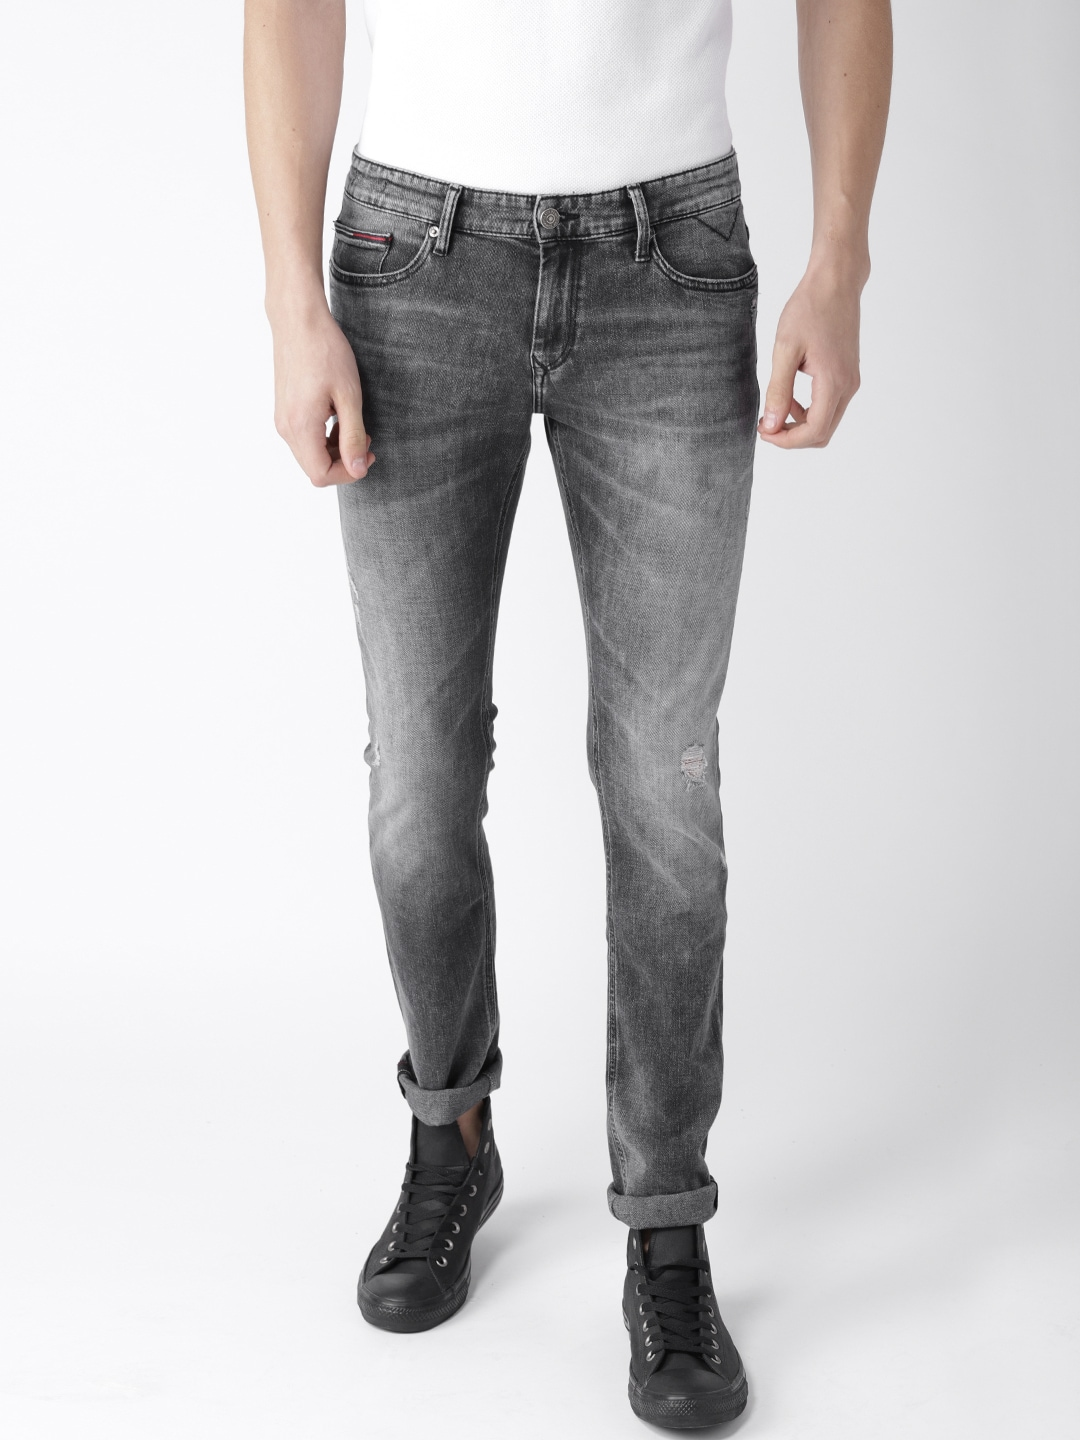 b569bb8f59 Men Jeans - Buy Jeans for Men in India at best prices